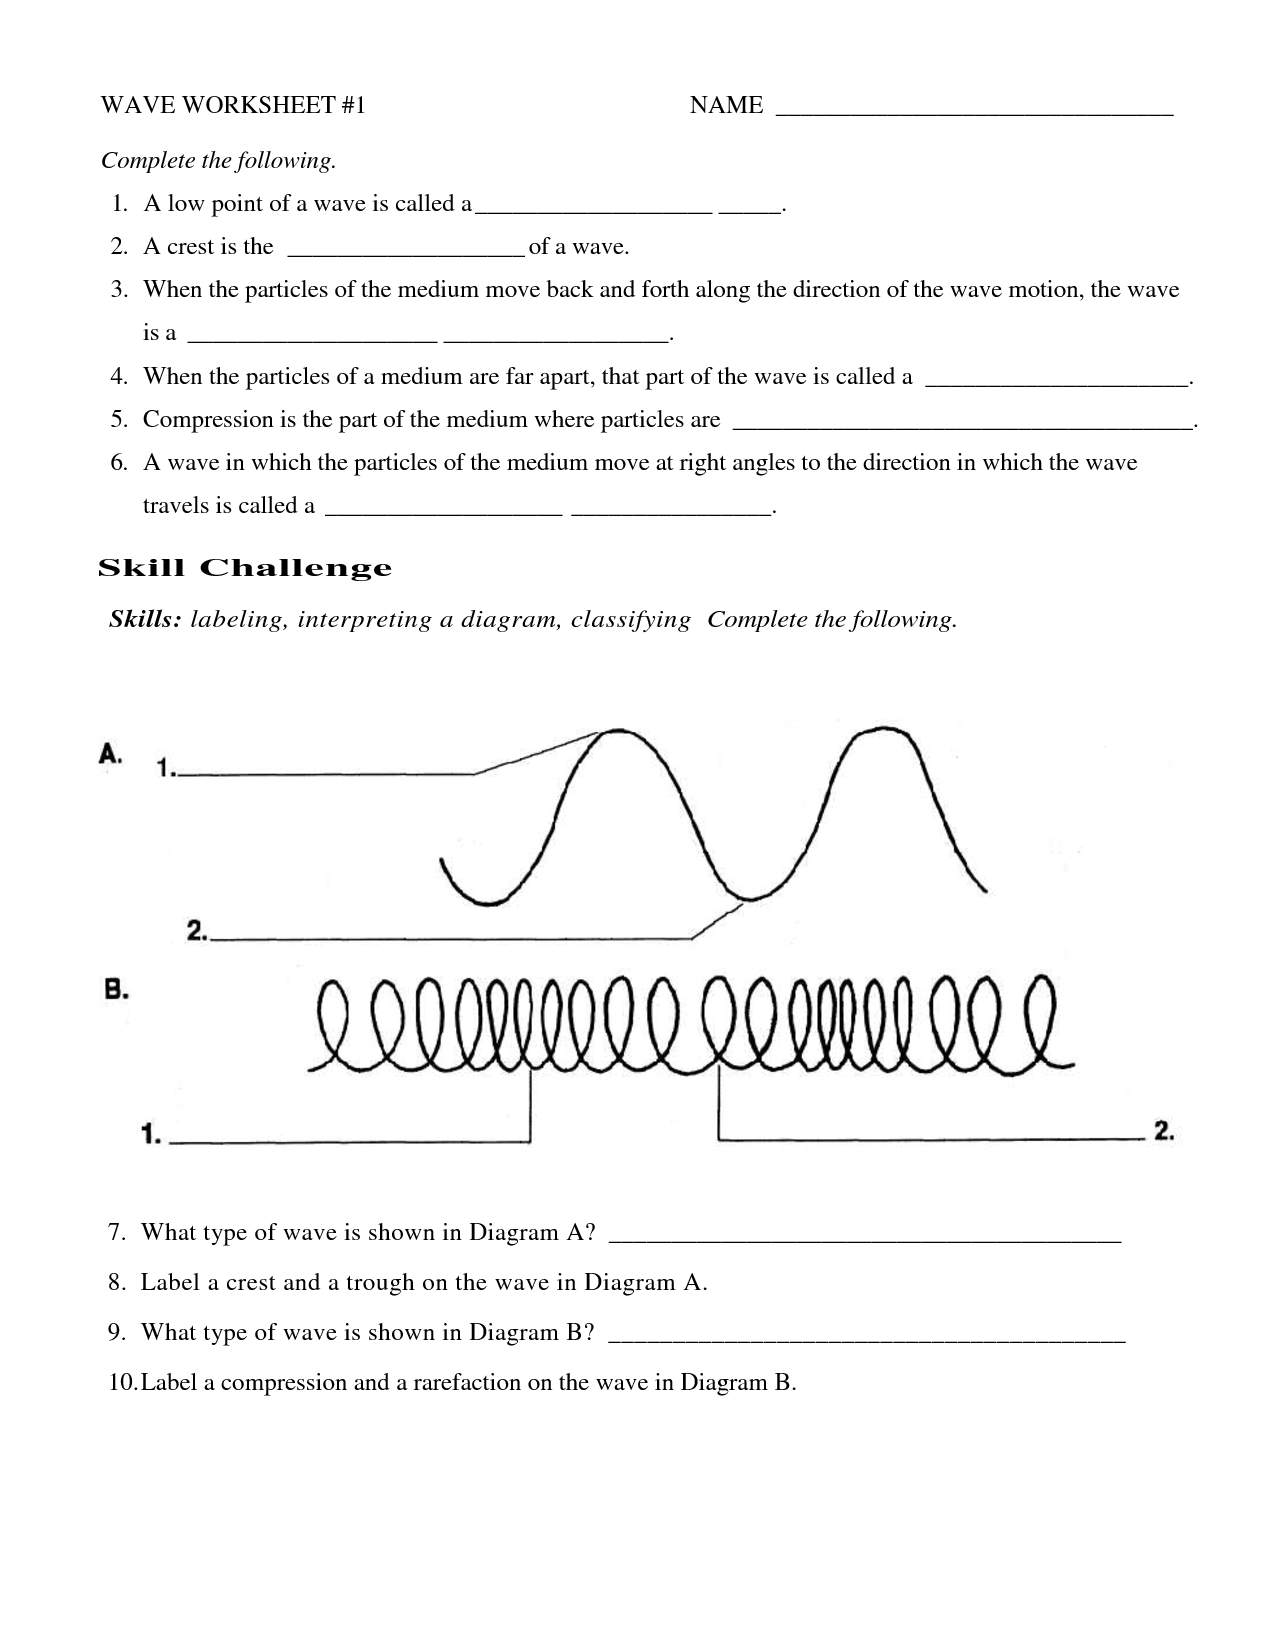 Diagram Of A Sound Wave Worksheet Answers